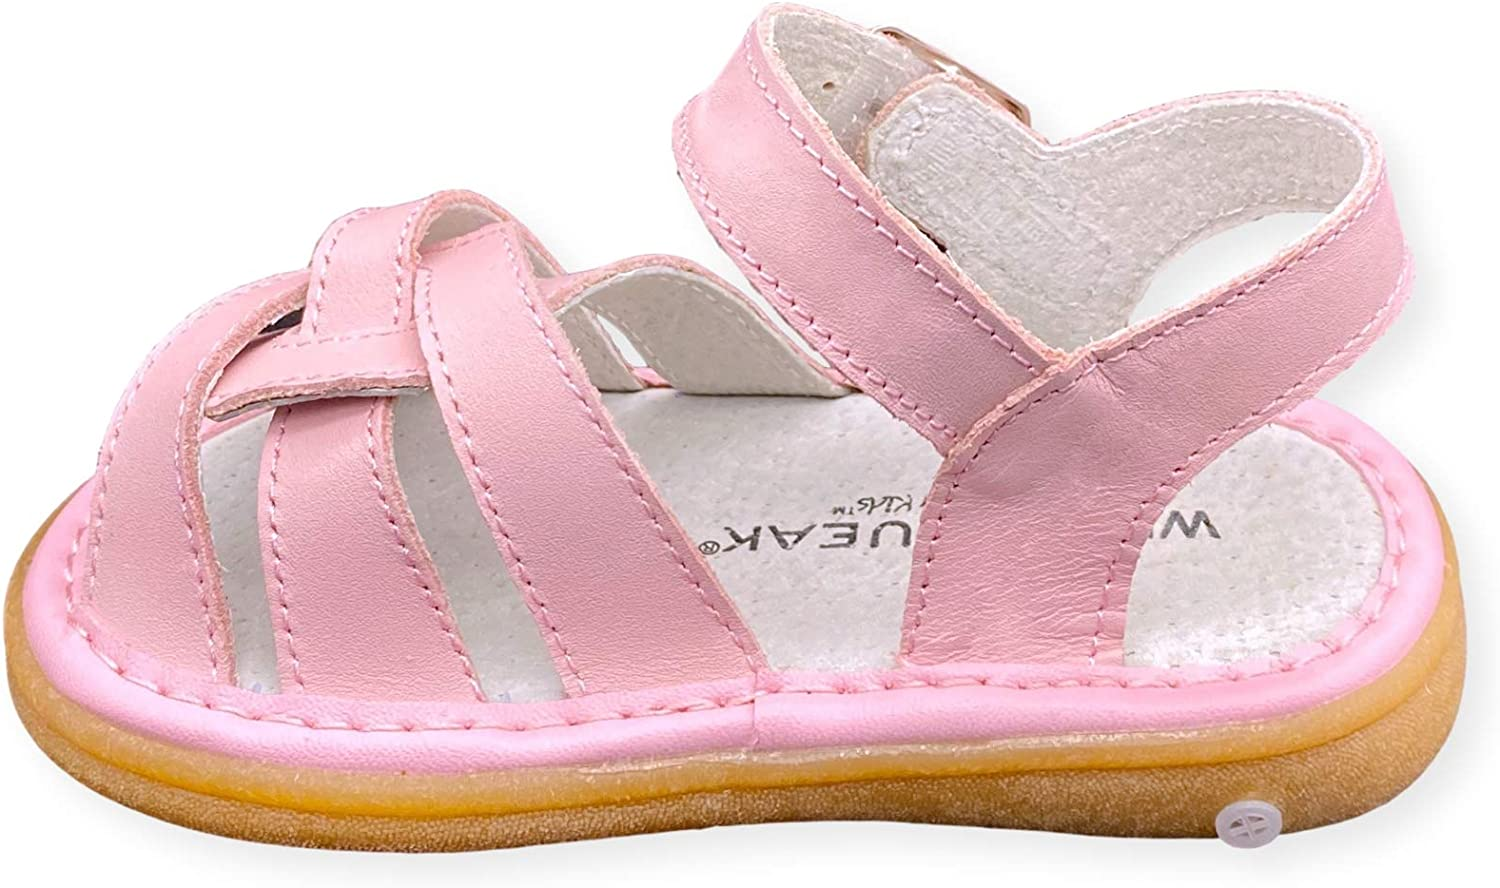 Wee Squeak Girls Toddler Squeaky Sandals with Removable Squeaker